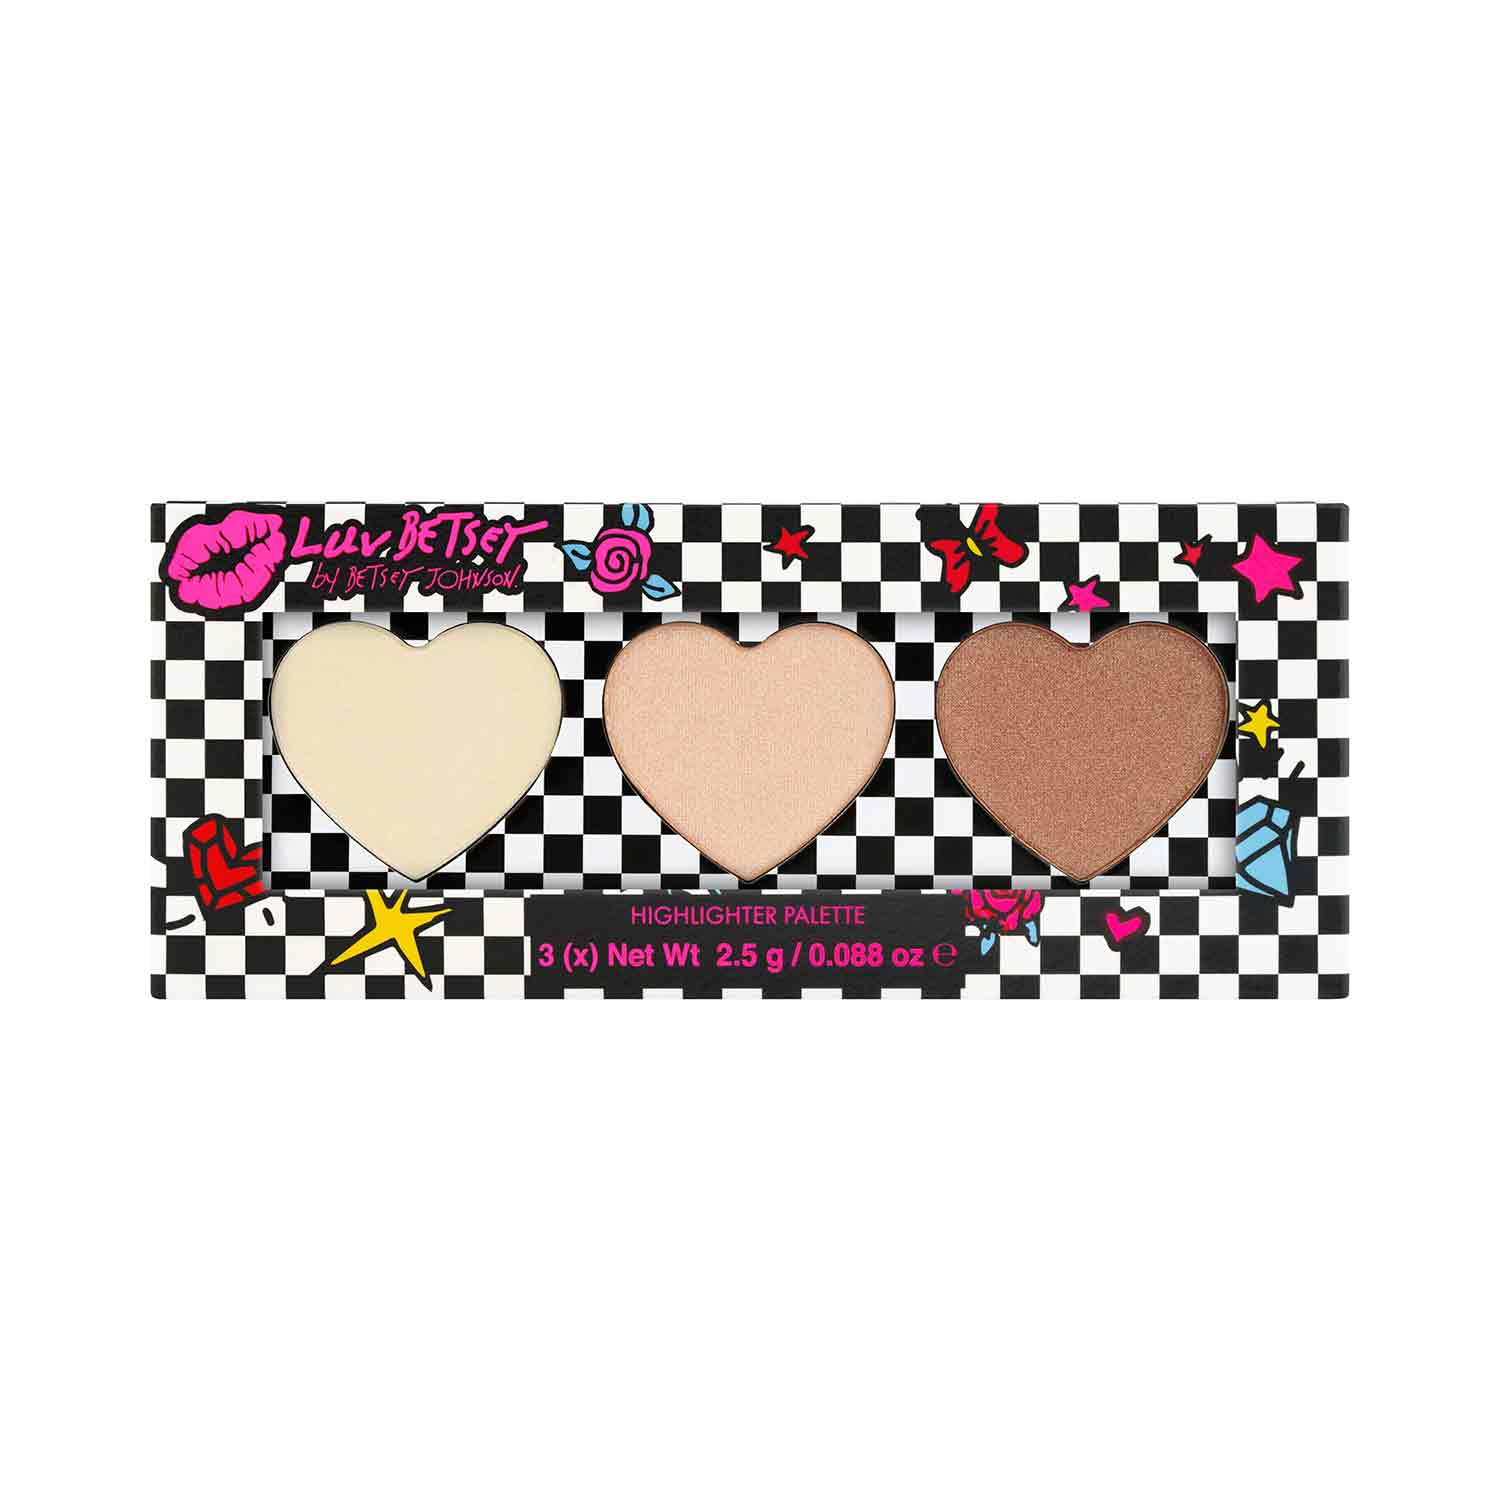 LUV BETSEY COSMETICS 3 Shade Highlighter Palette